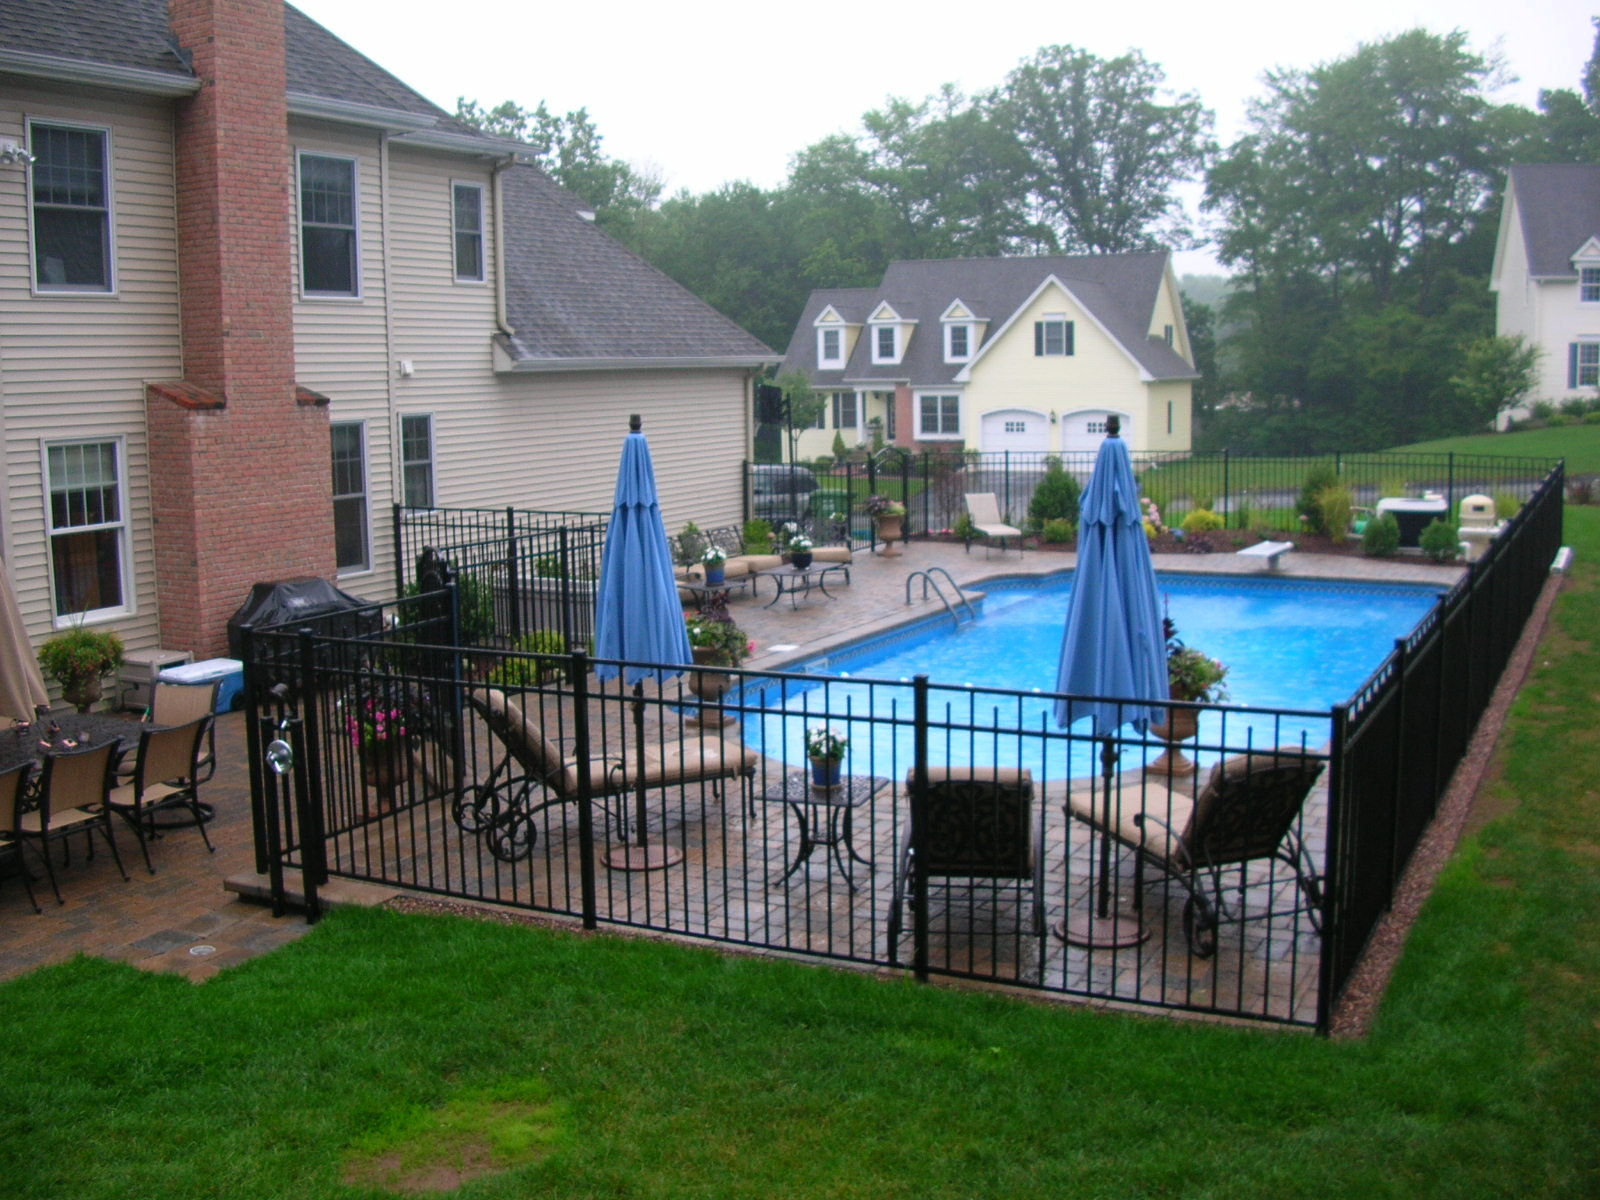 Professional Pool Designers custom inground pool design in 5 easy steps The Ease Of Maintenance And Summer Color Brings The Homeowners To Ease To Enjoy The Pool And Keep The Poolscape Manicured Without Much Effort